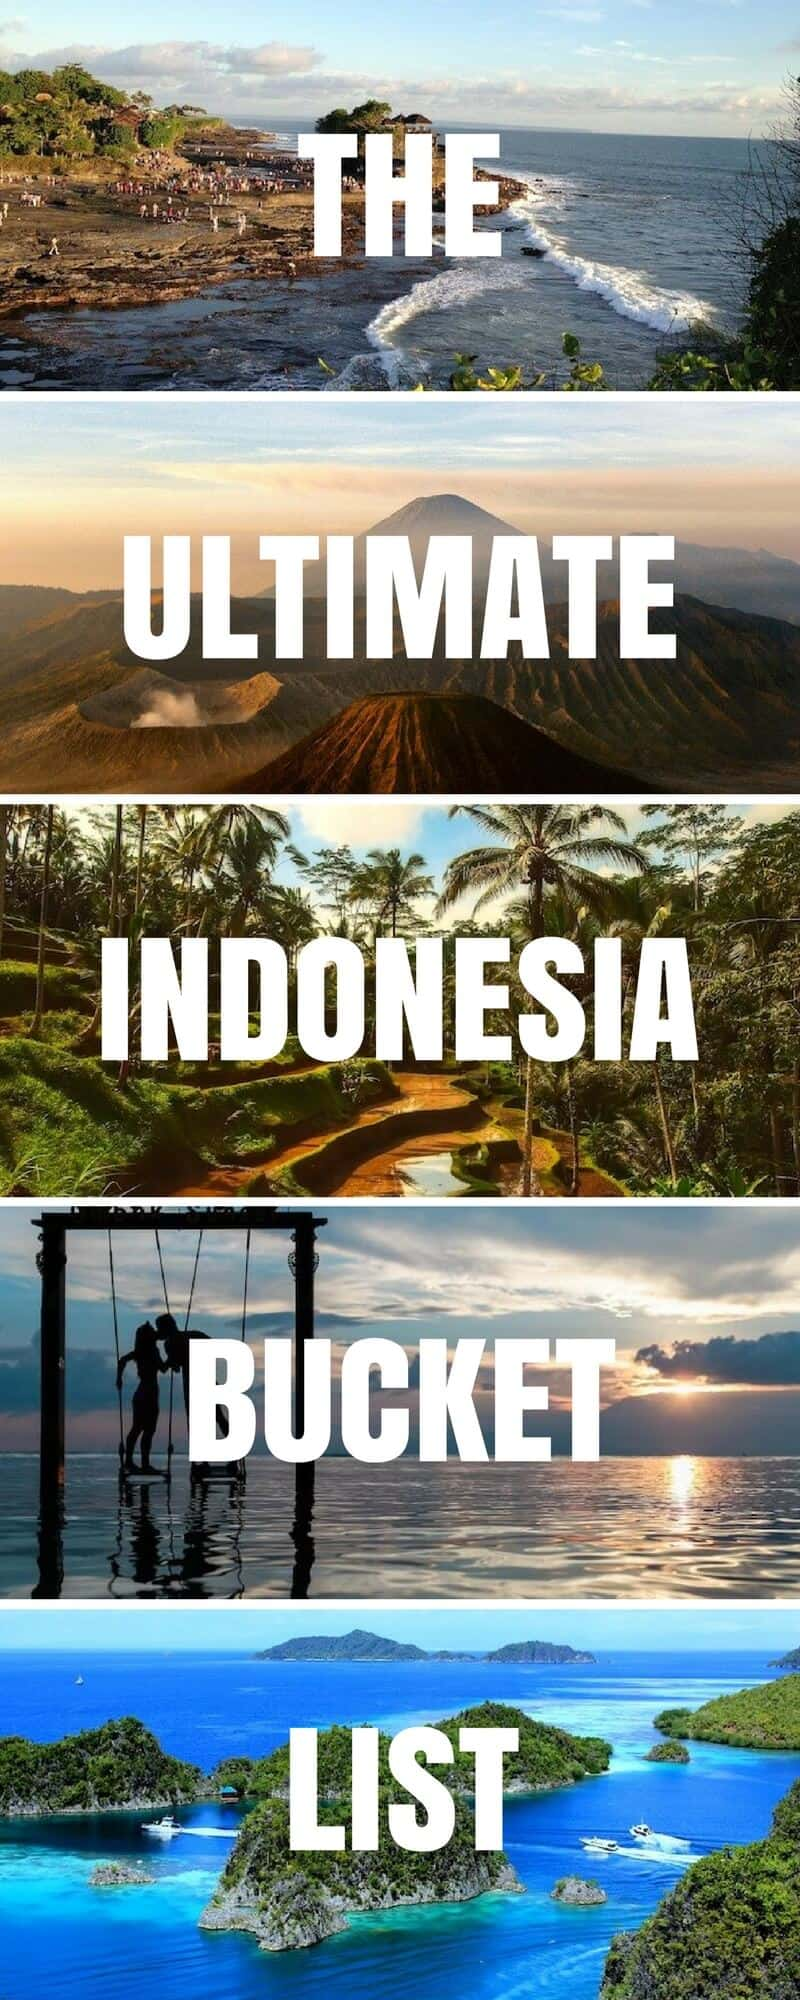 Tourists Attractions in Indonesia